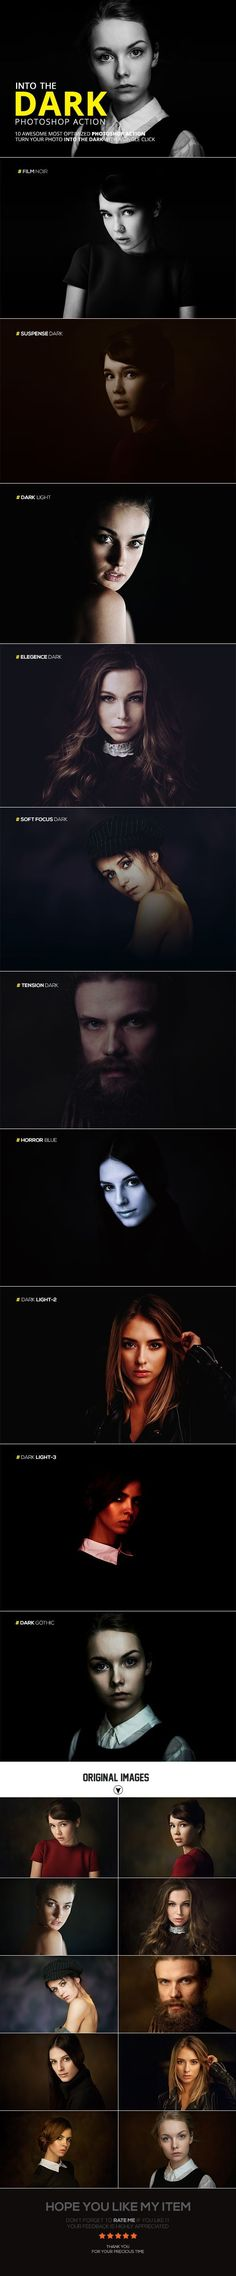 Into The Dark Photoshop Action - Photo Effects Actions